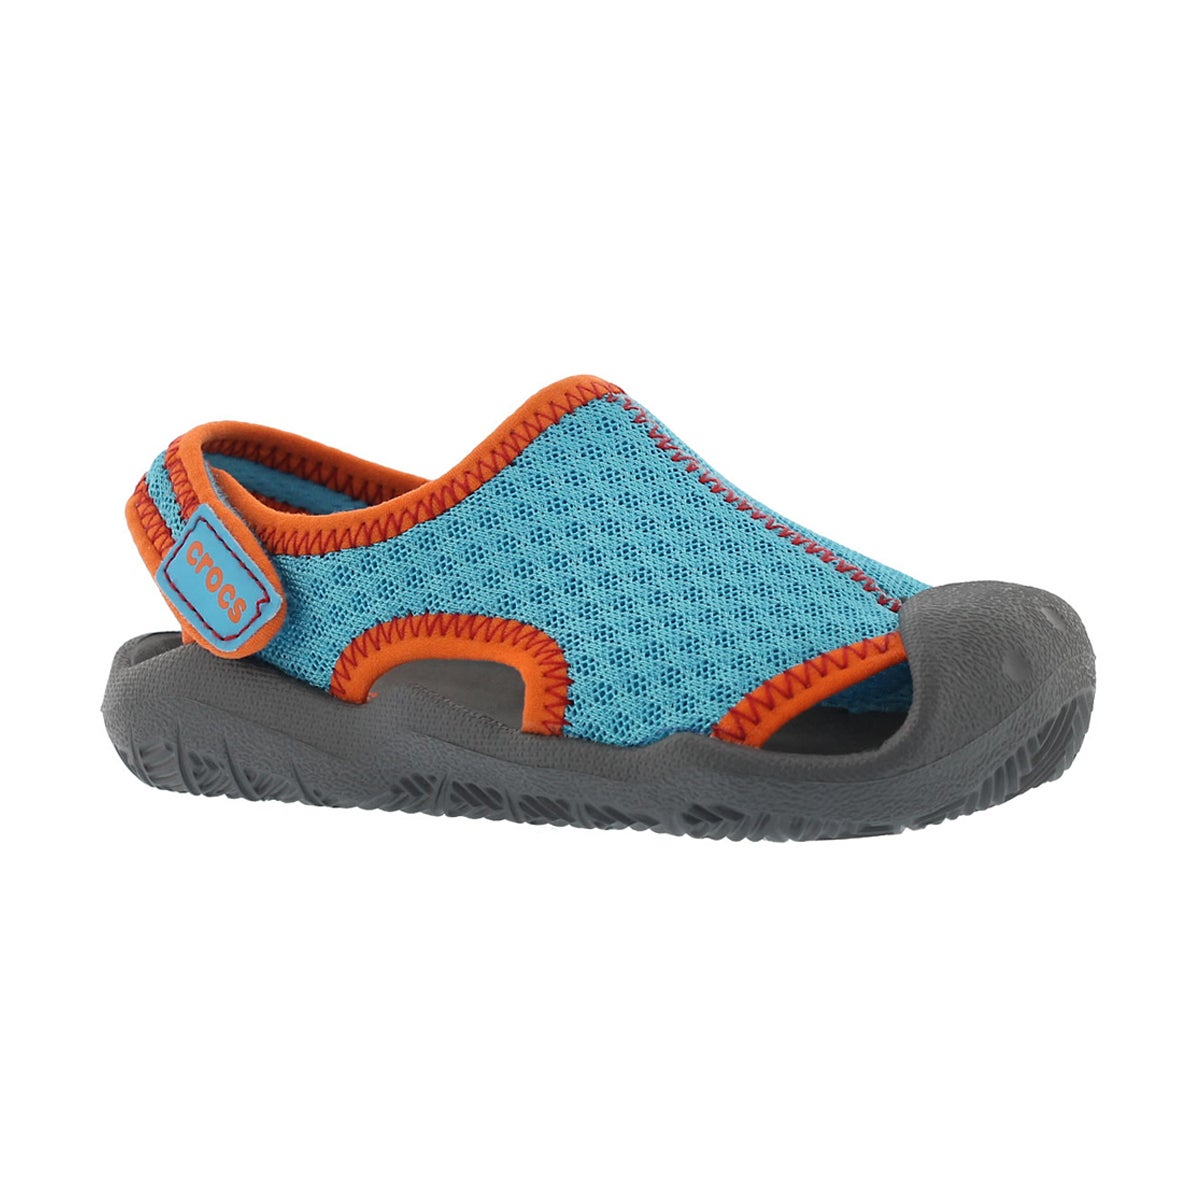 Kids' SWIFTWATER blue/grey casual sandals